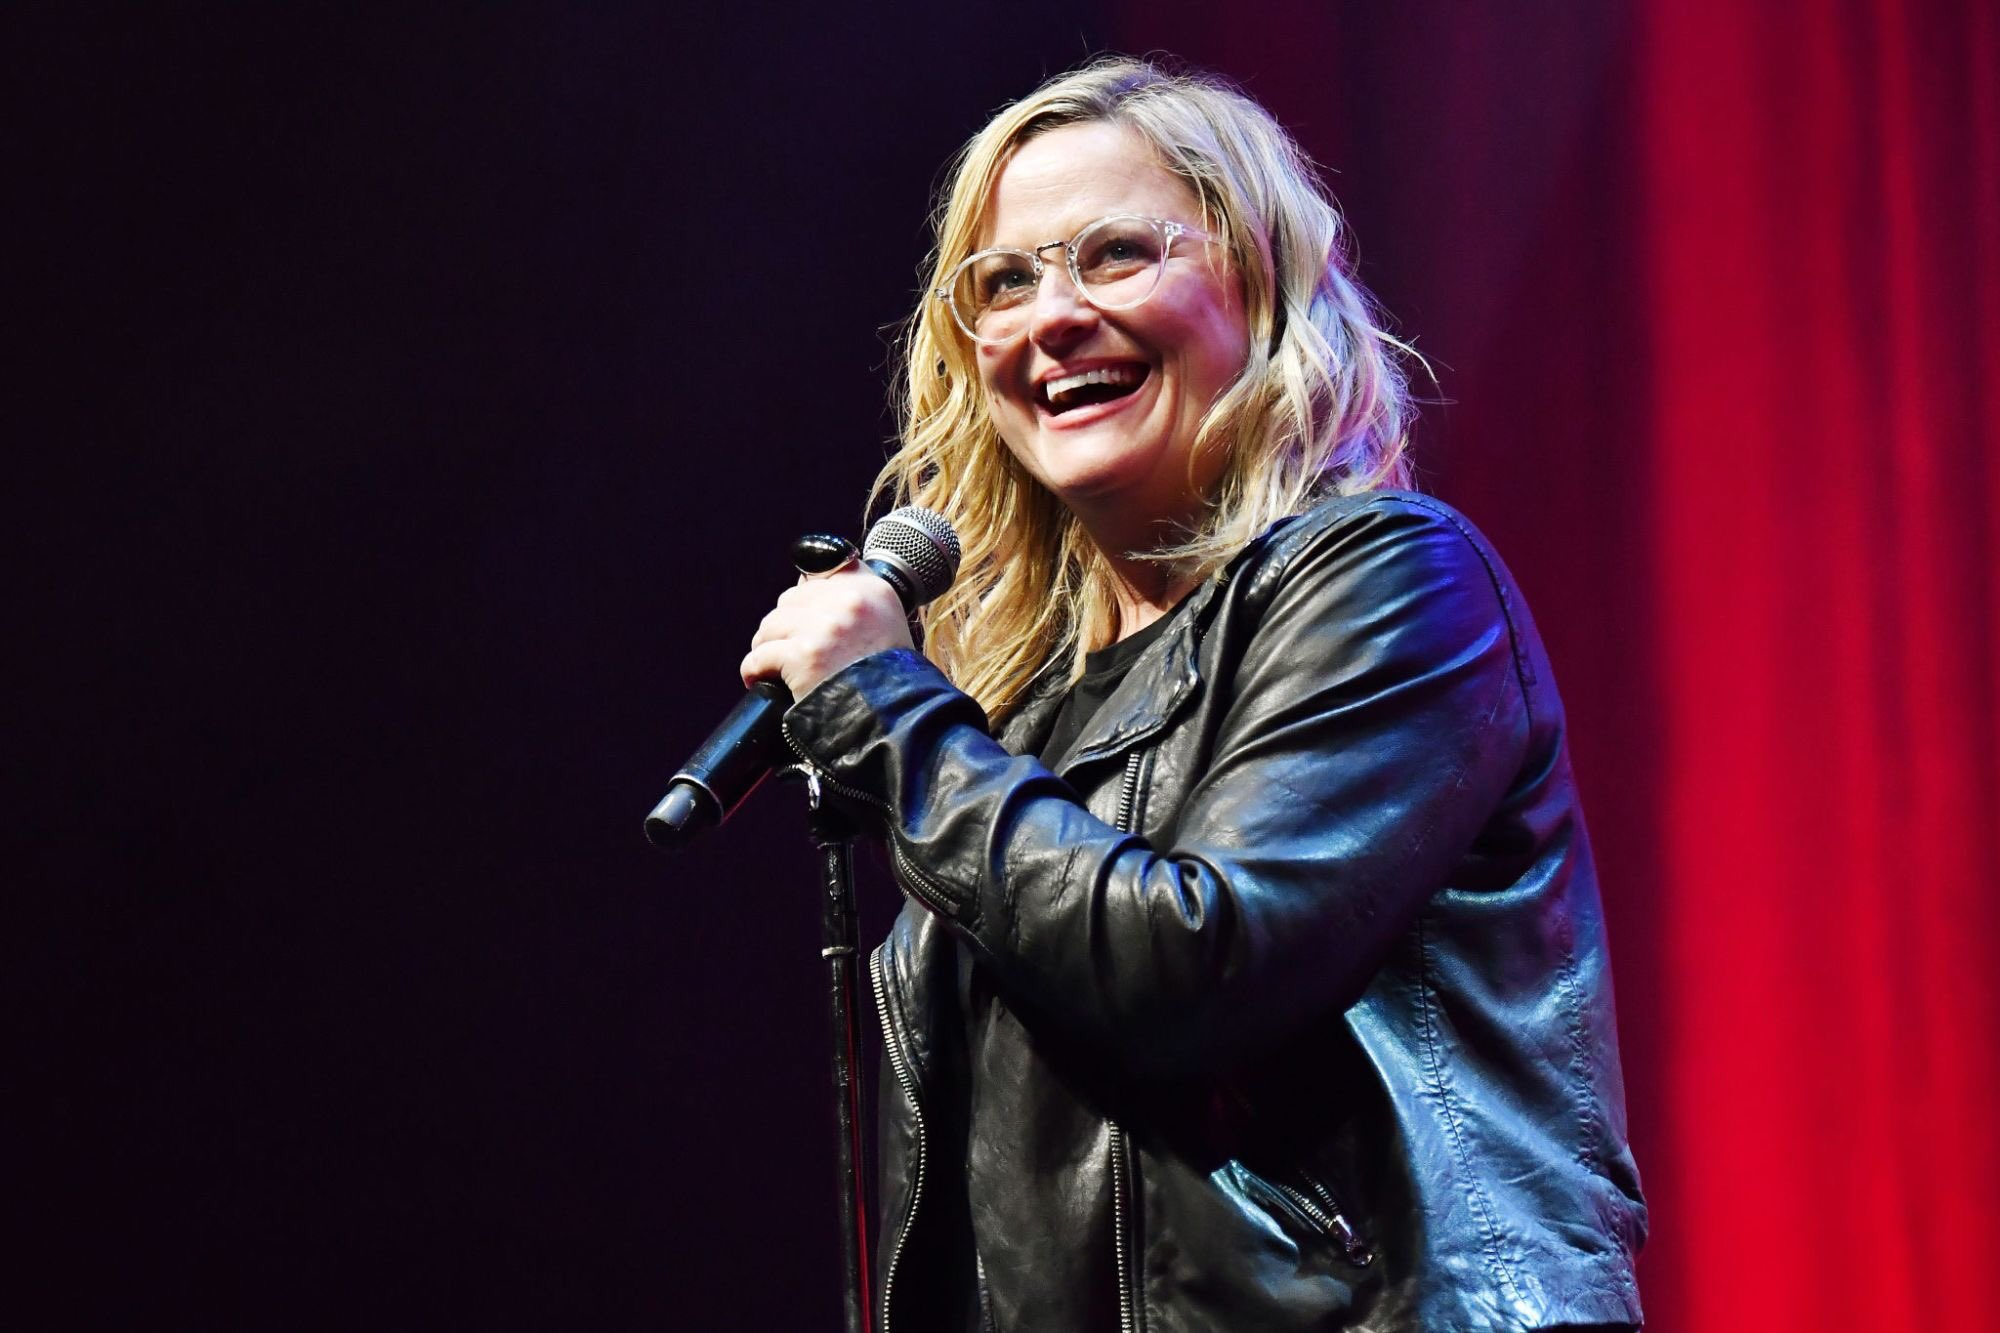 Happy birthday to the love of my life, miss amy poehler!! you continue to inspire me to this day